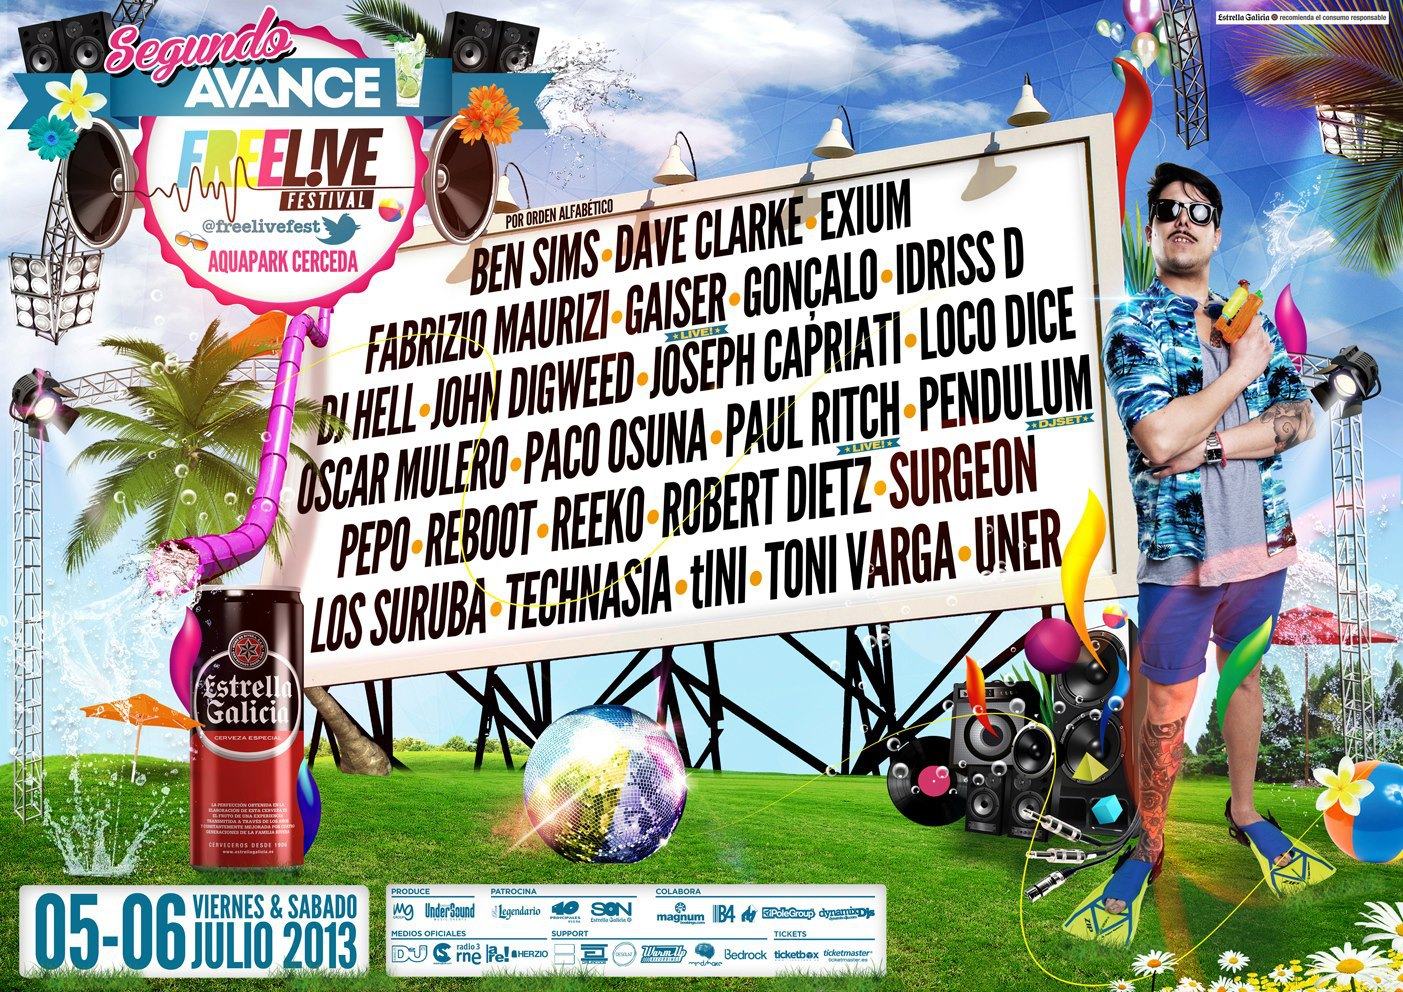 Freelive 2013 avance cartel